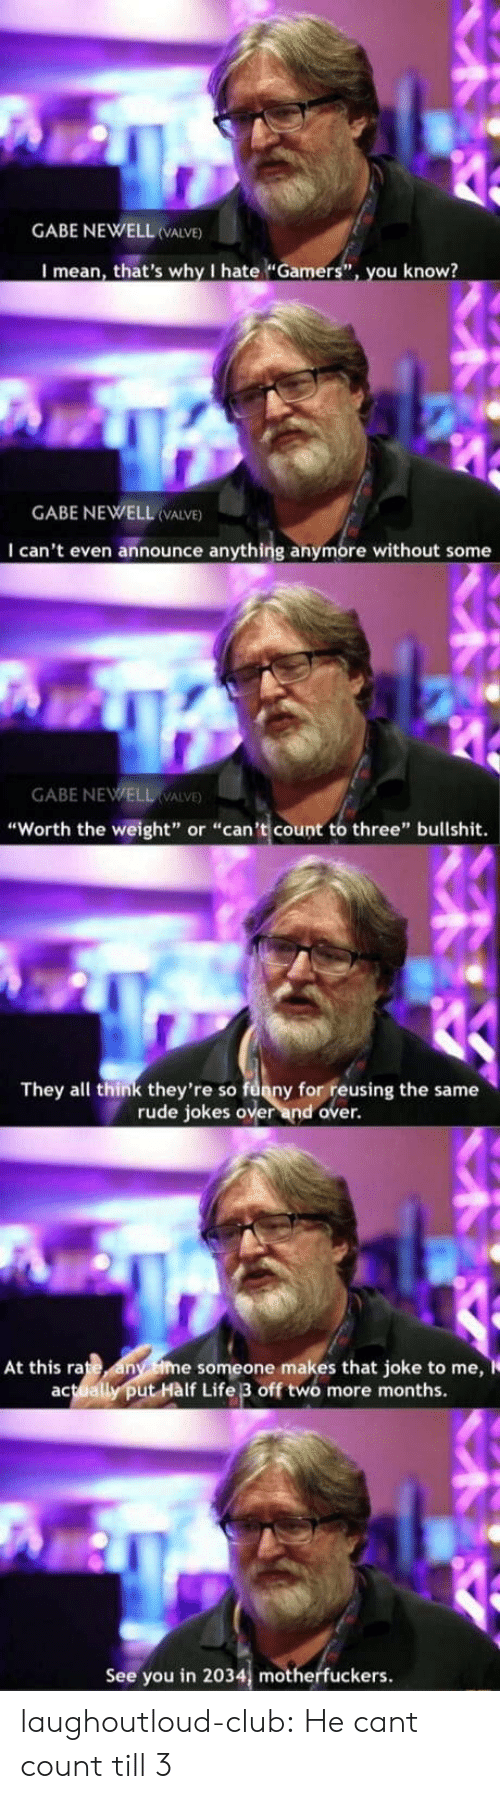 "Club, Funny, and Life: GABE NEWELL VALVE)  I mean, that's why I hate ""Gamers"", you know?  GABE NEWELL (VALVE)  I can't even announce anything anymore without some  GABE NEWELL VALVE  ""Worth the weight"" or ""can't count to three"" bullshit.  They all think they're so funny for reusing the same  rude jokes over and over.  At this rate any ime someone makes that joke to me,  actually put Hàlf Life 3 off two more months.  See you in 2034, motherfuckers. laughoutloud-club:  He cant count till 3"